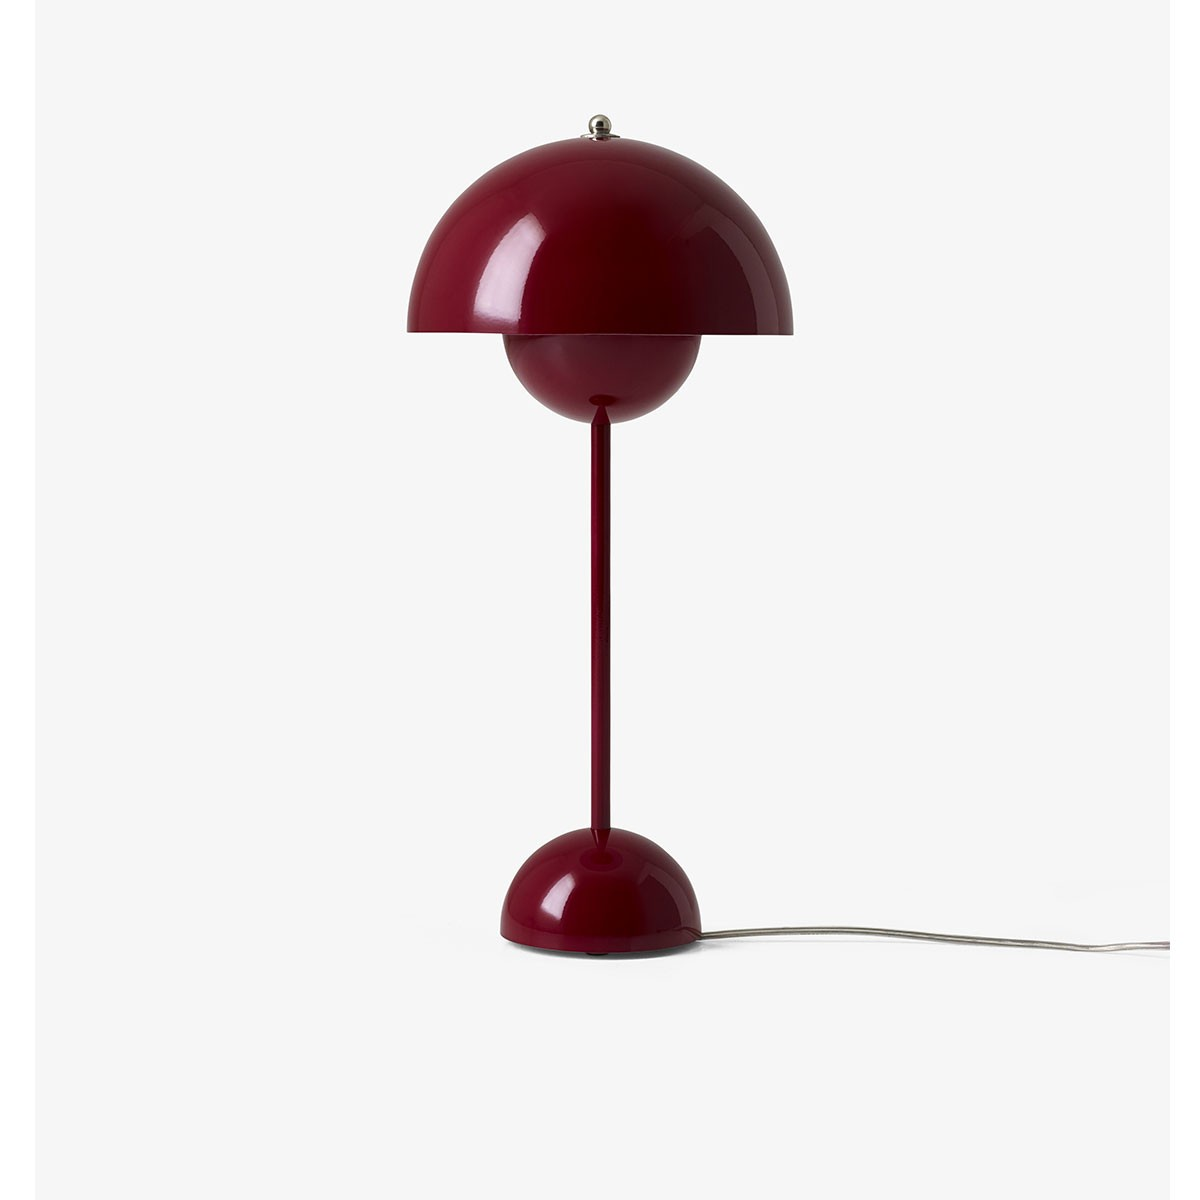 suspension-flowerpot-vp3-deep-red-and-tradition-design-paris